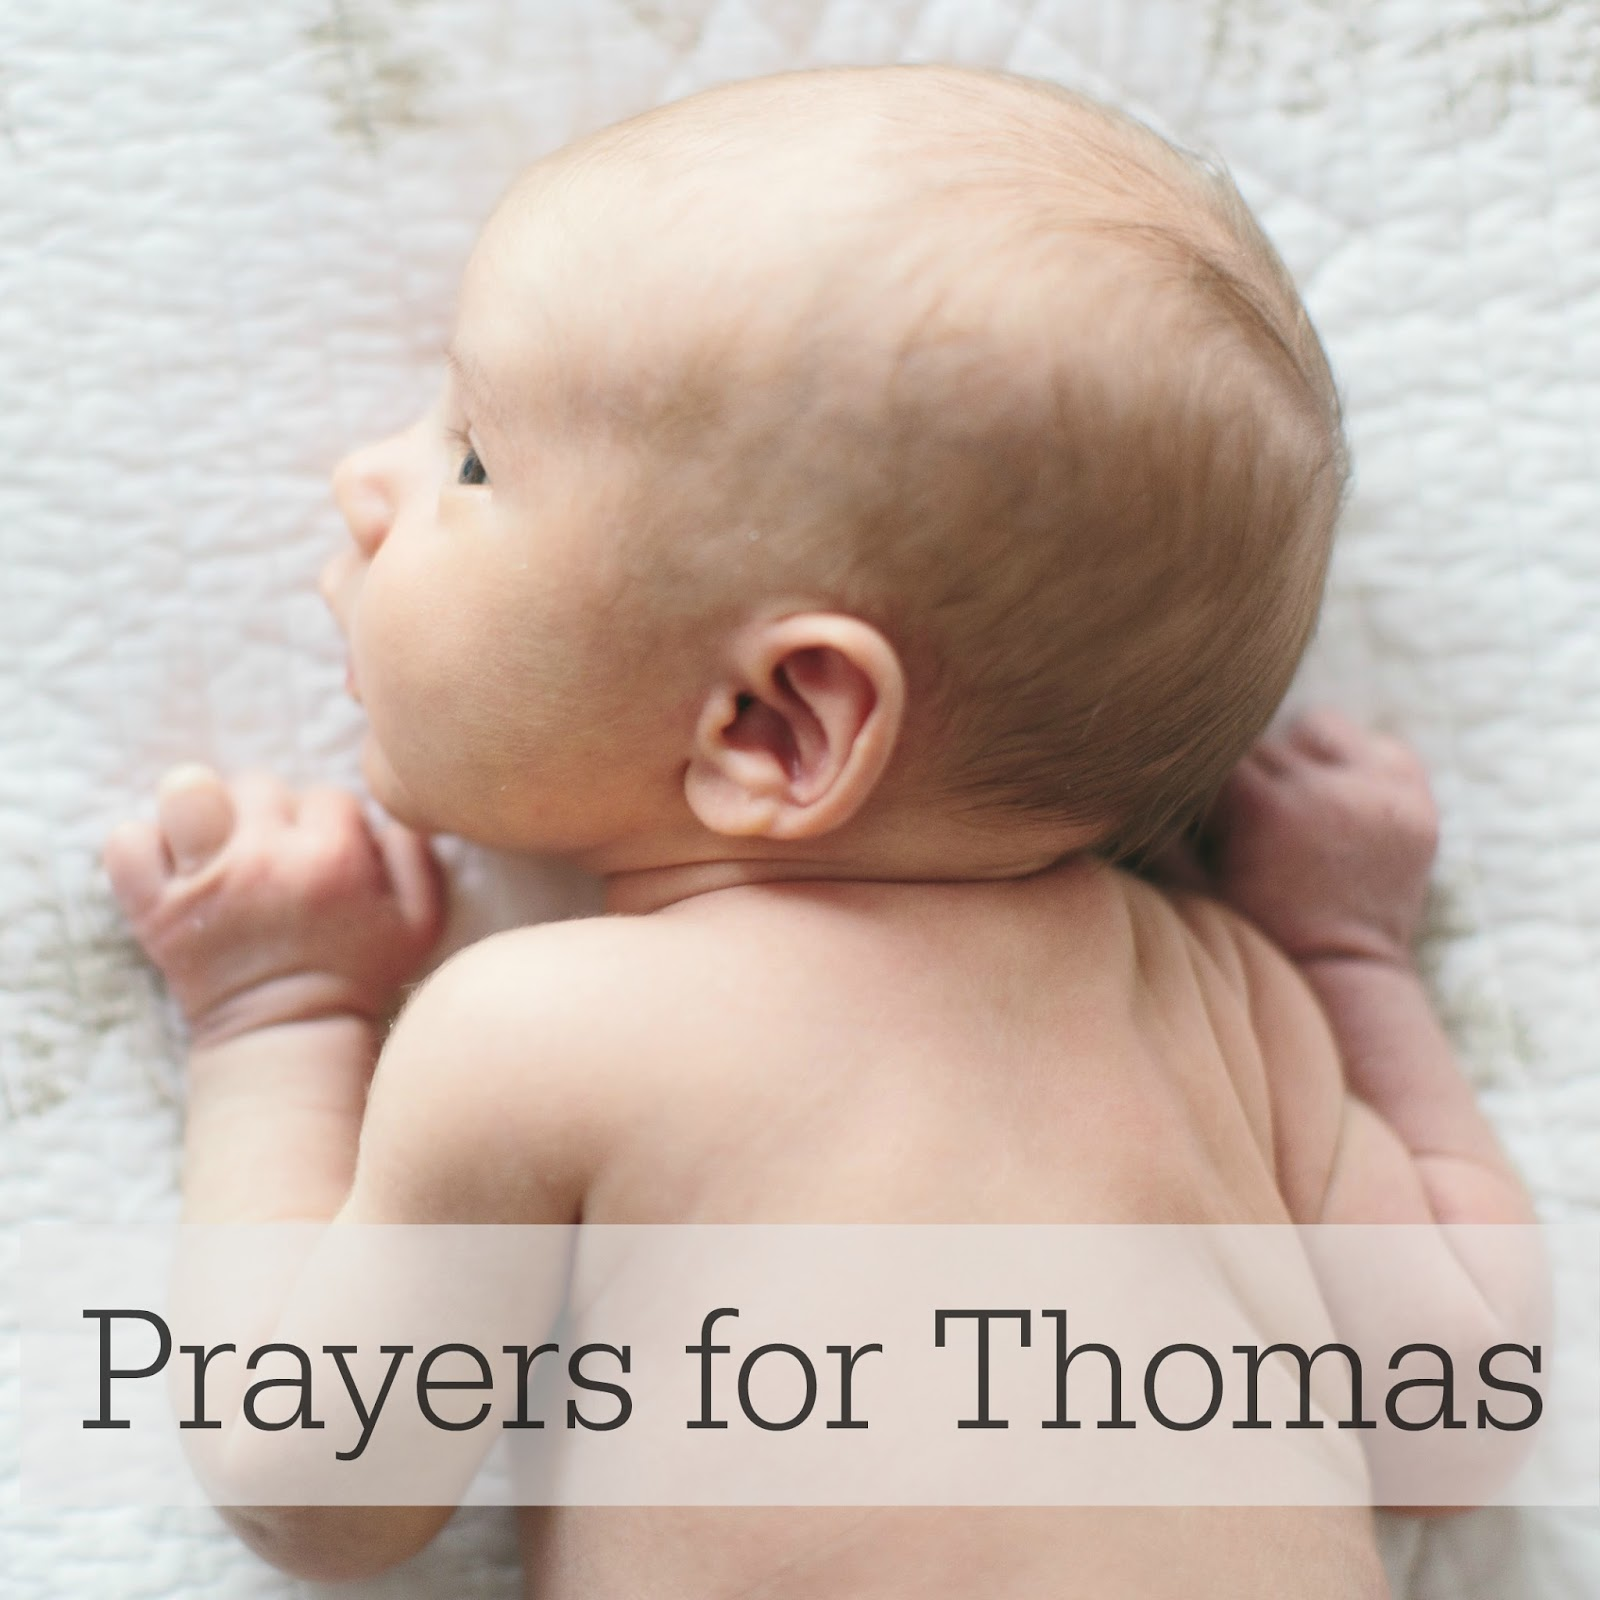 PRAYERS FOR THOMAS